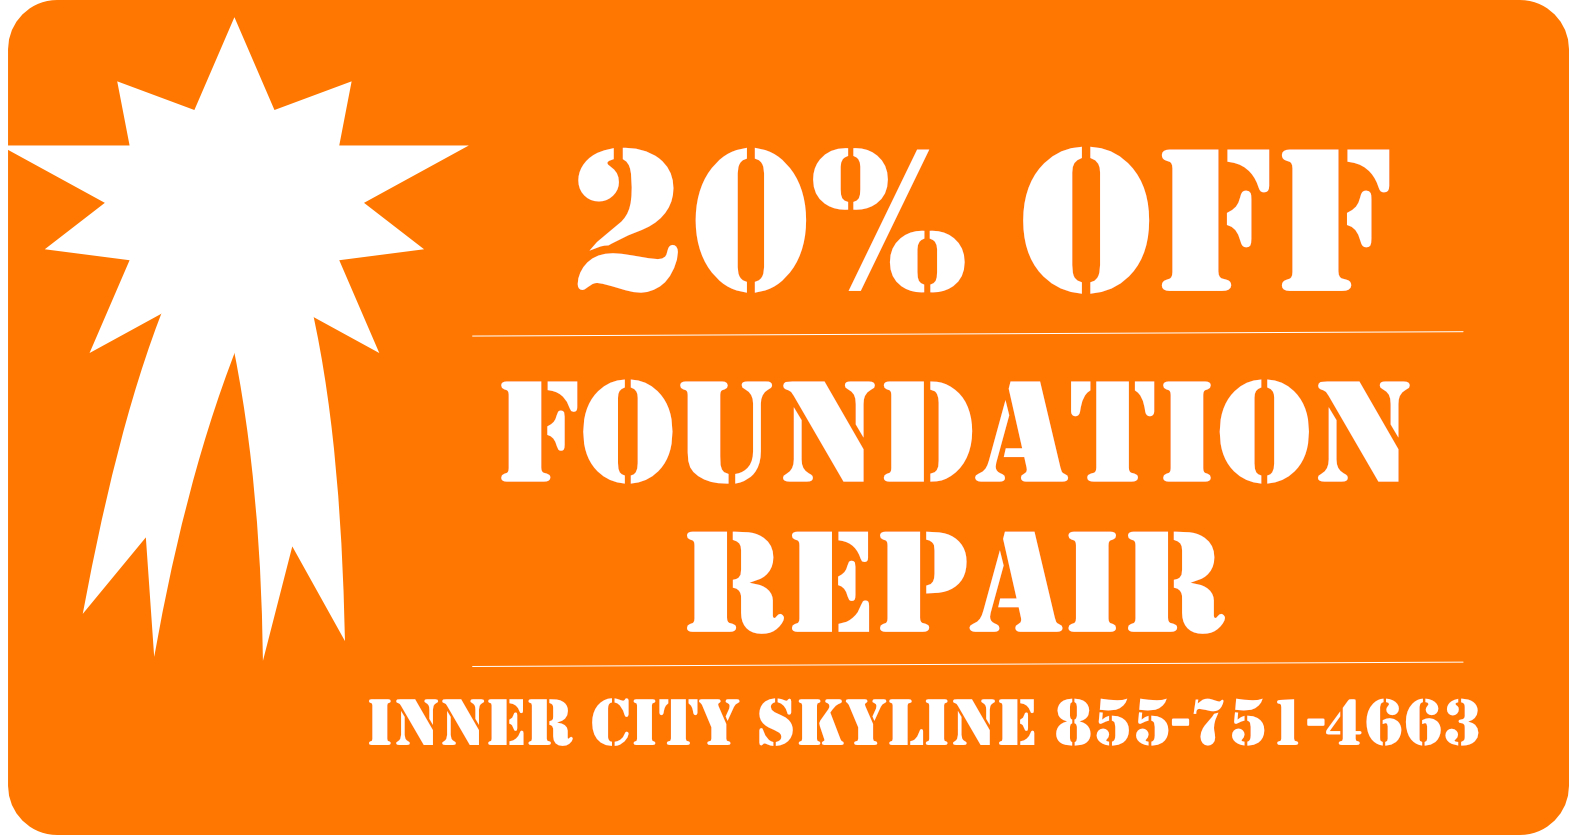 foundation-estimate-coupon.jpg